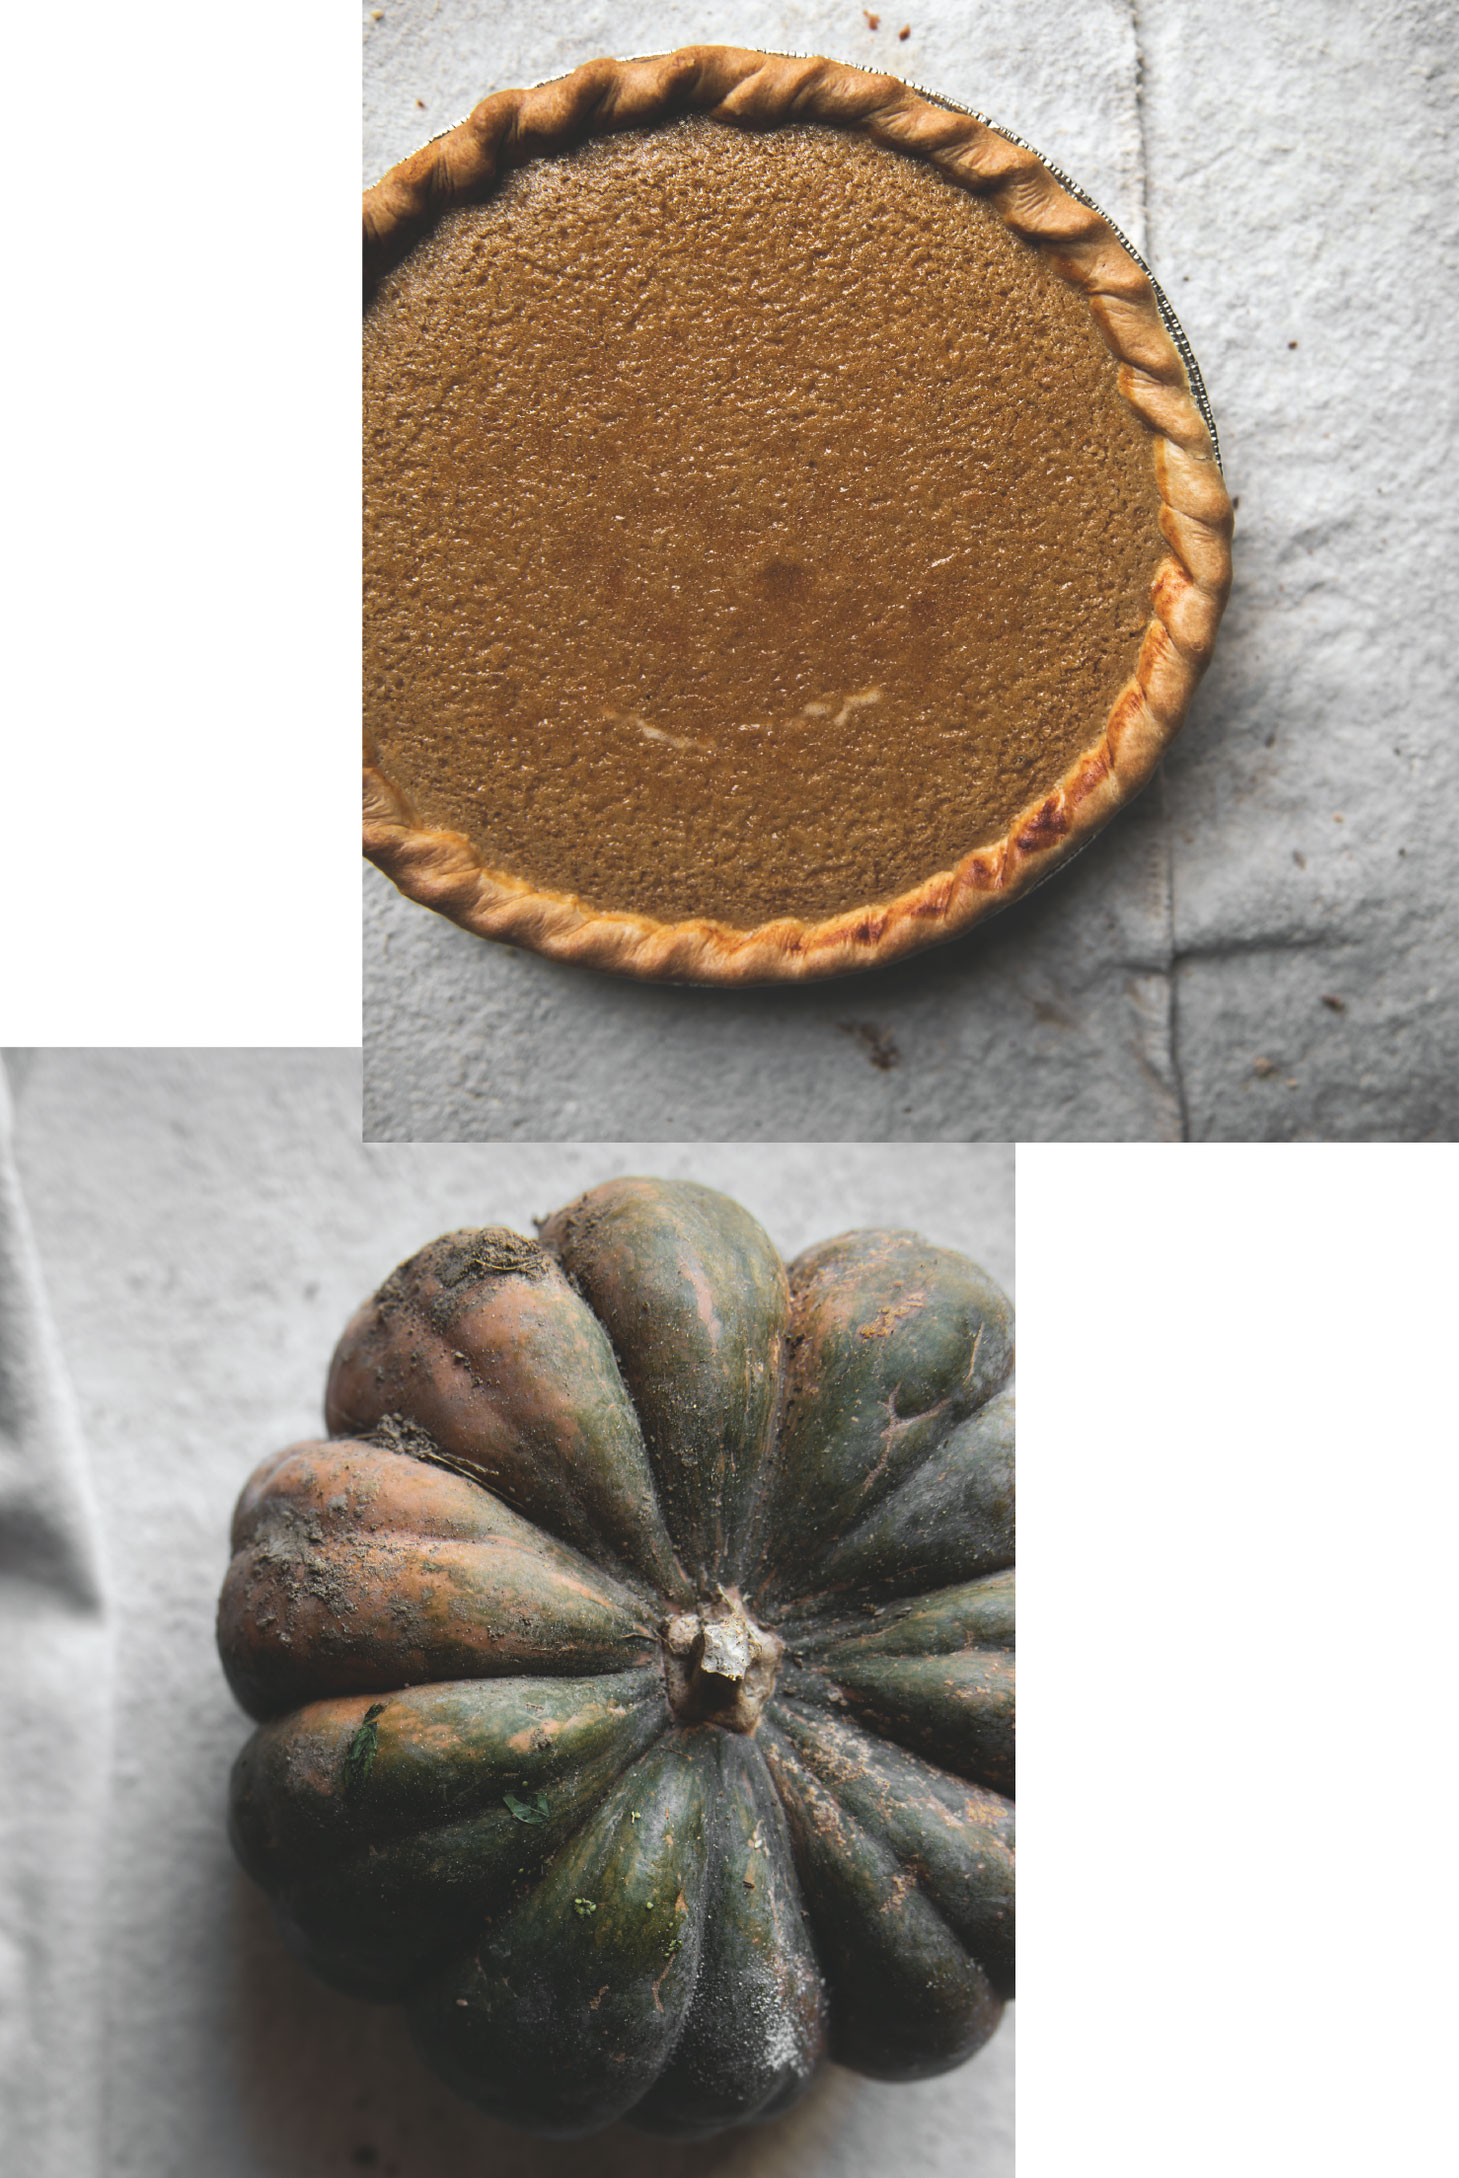 Bread Alone Pumpkin Pies